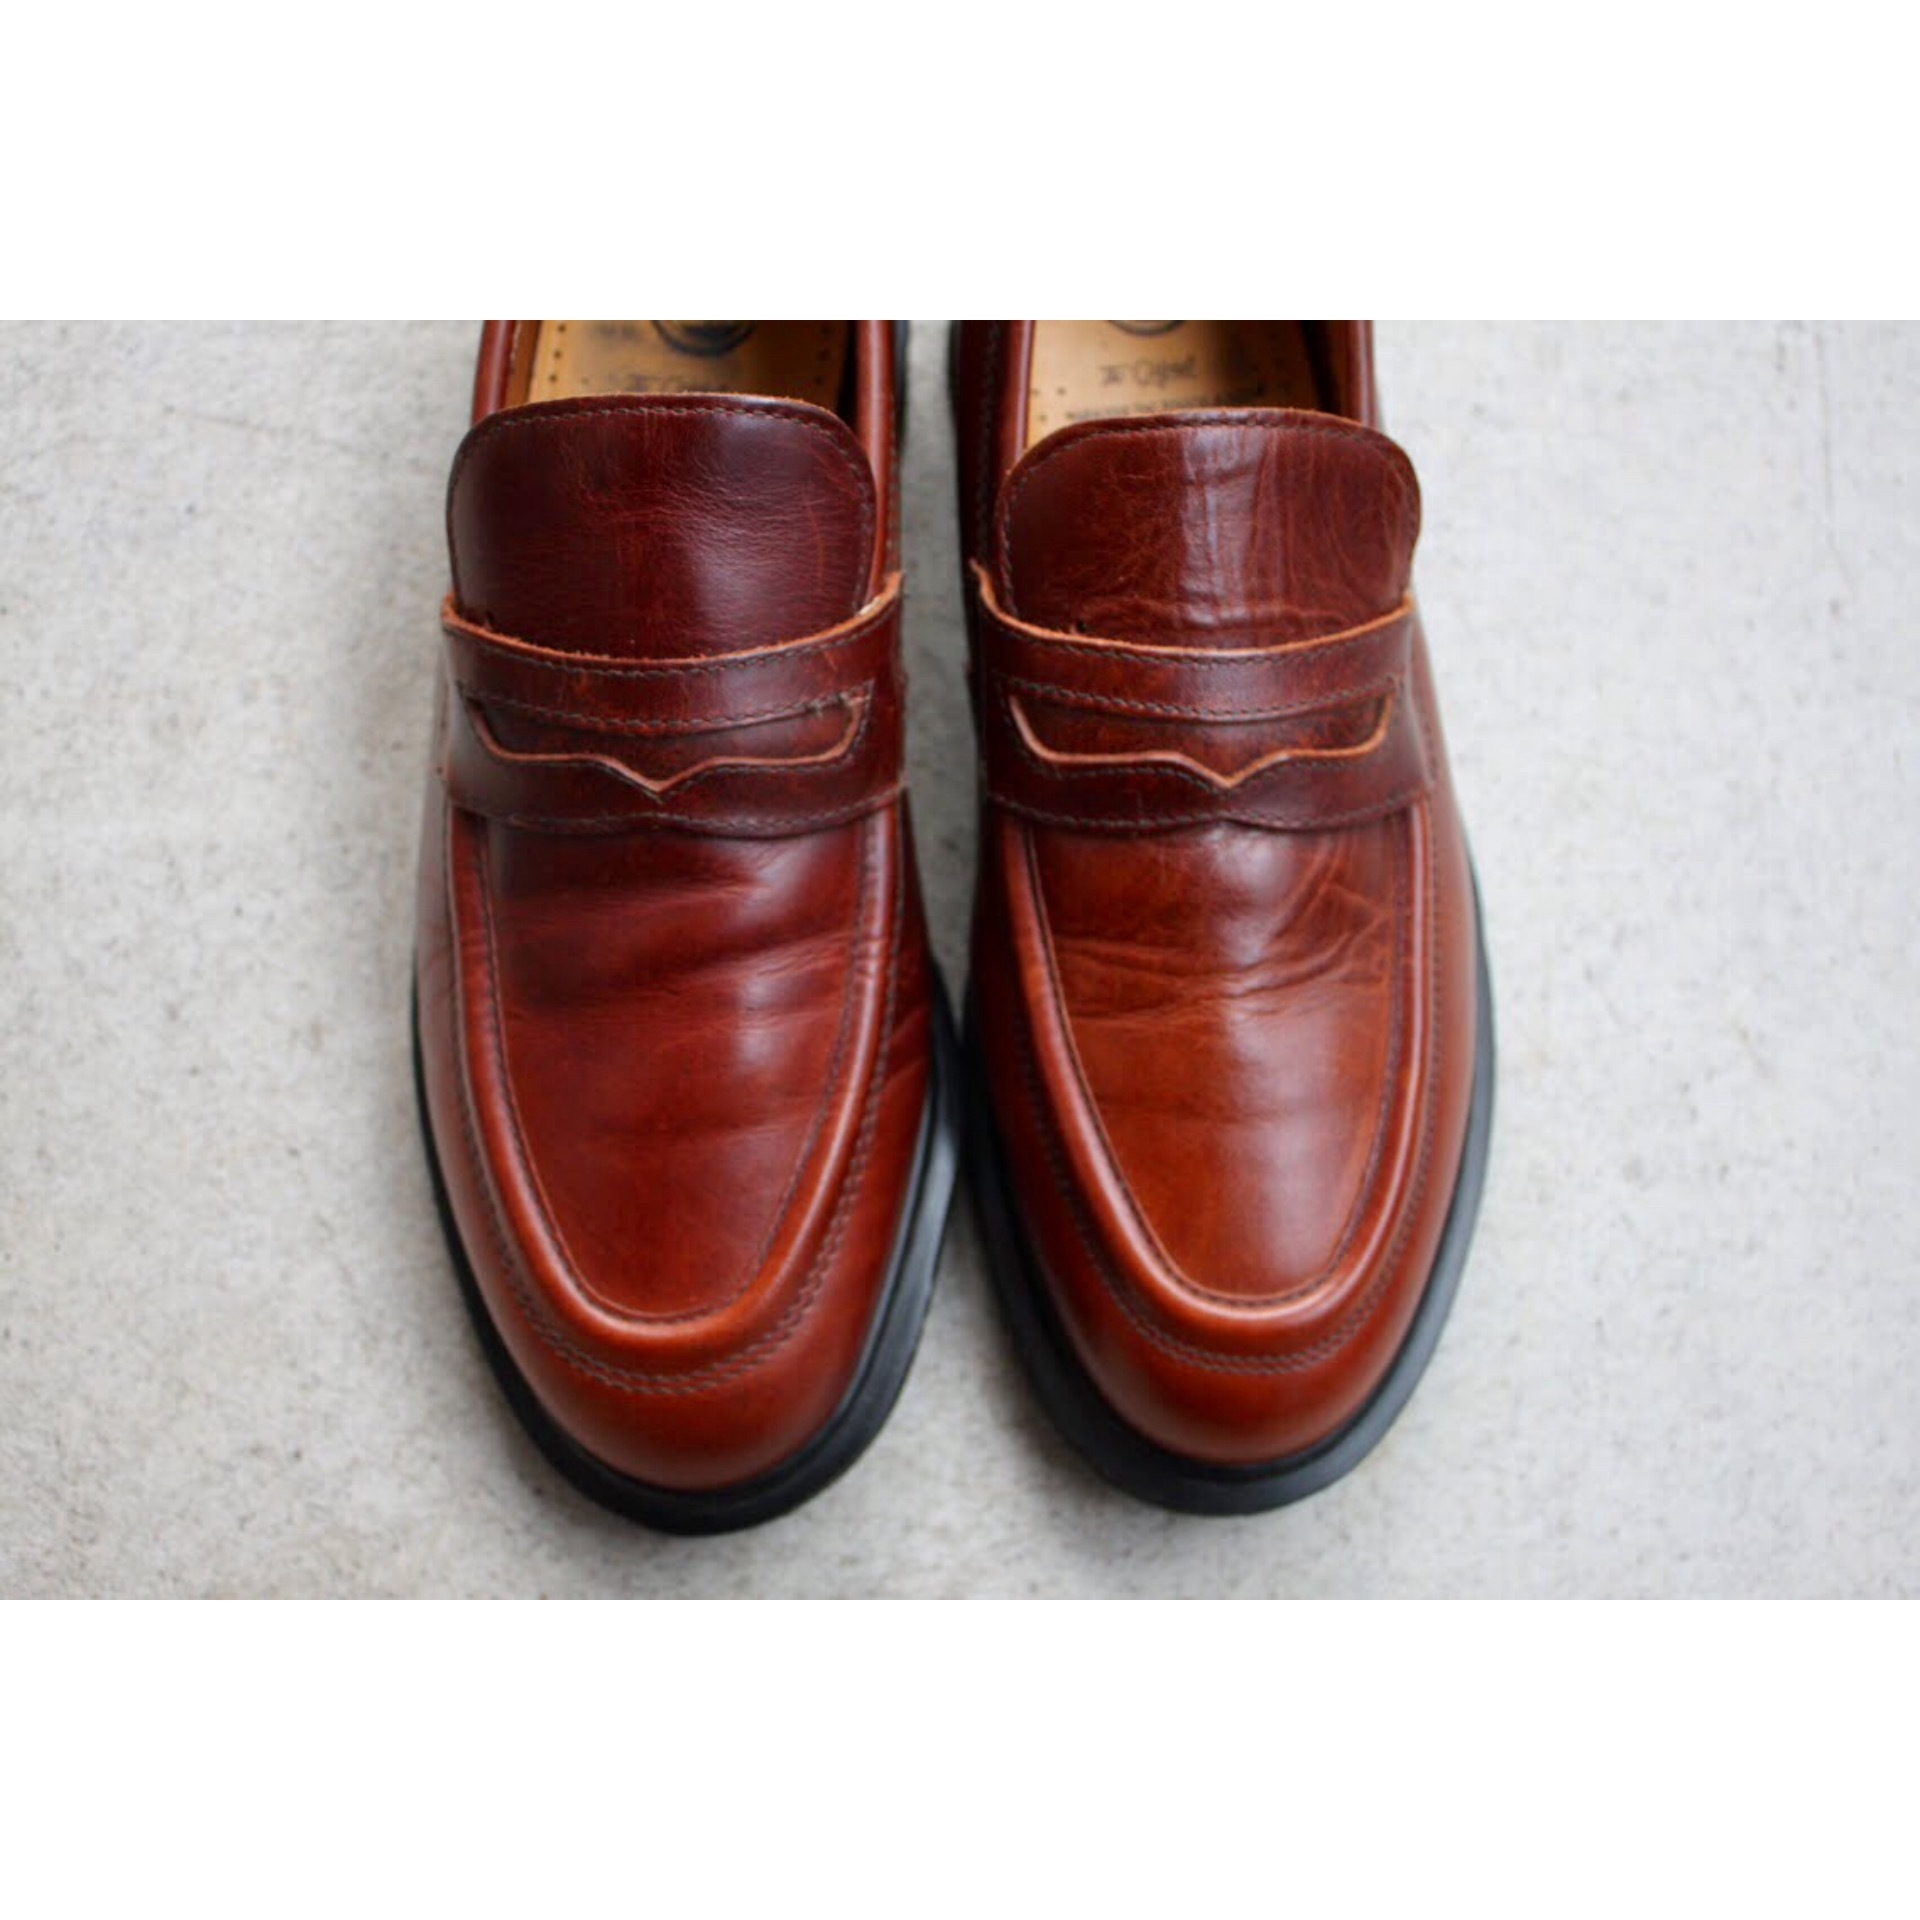 Dr. Martins loafers Made in England Size 7